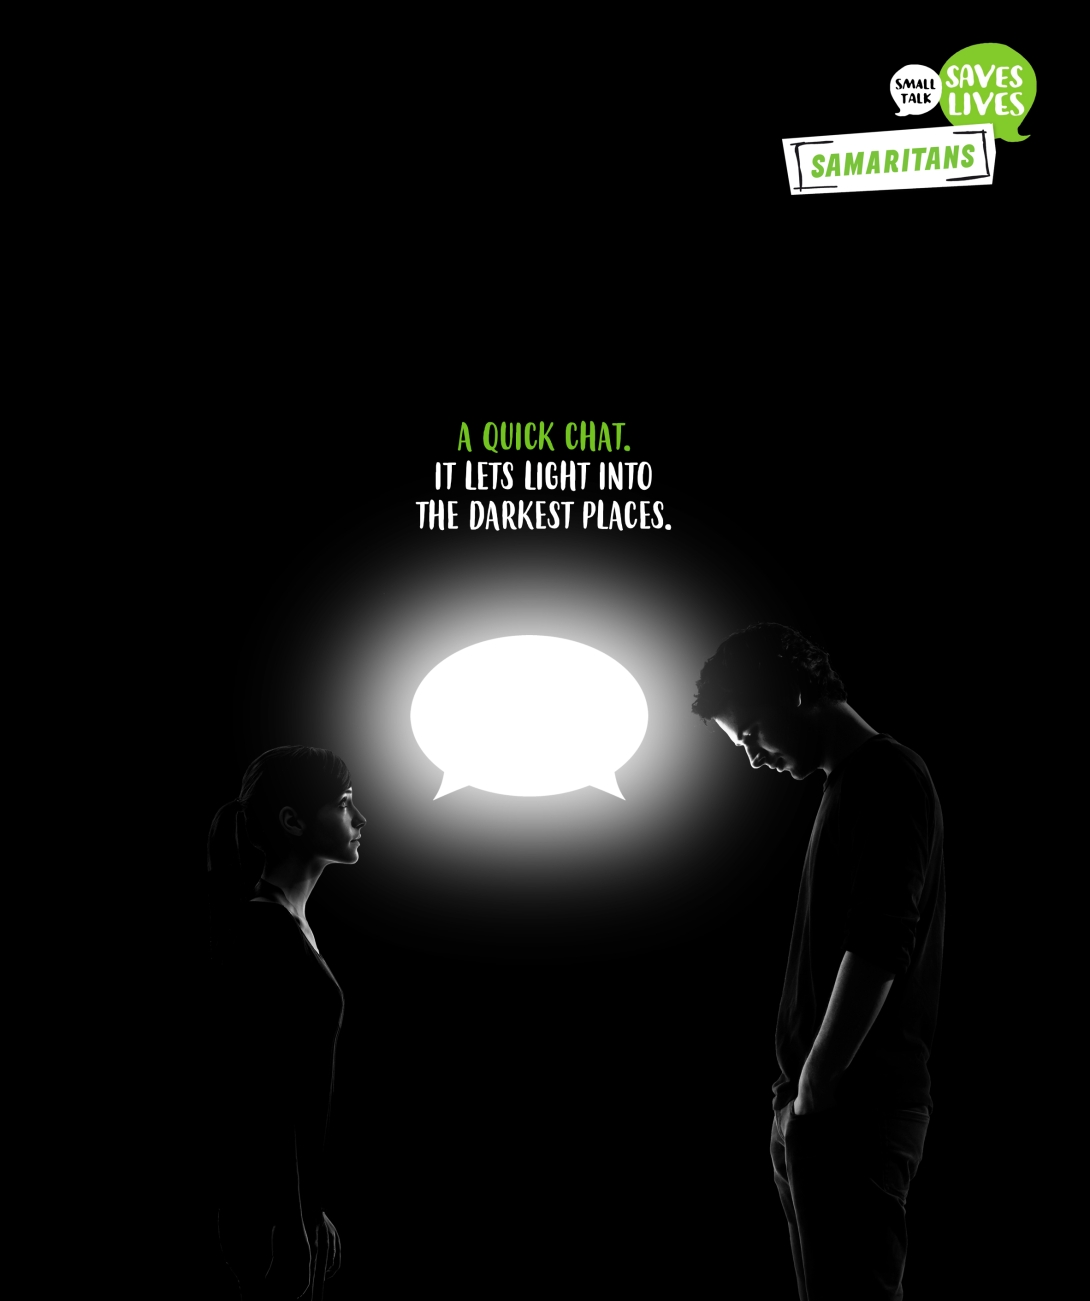 Advertising idea for the Samaritans - a quick chat lets a little bit of light in